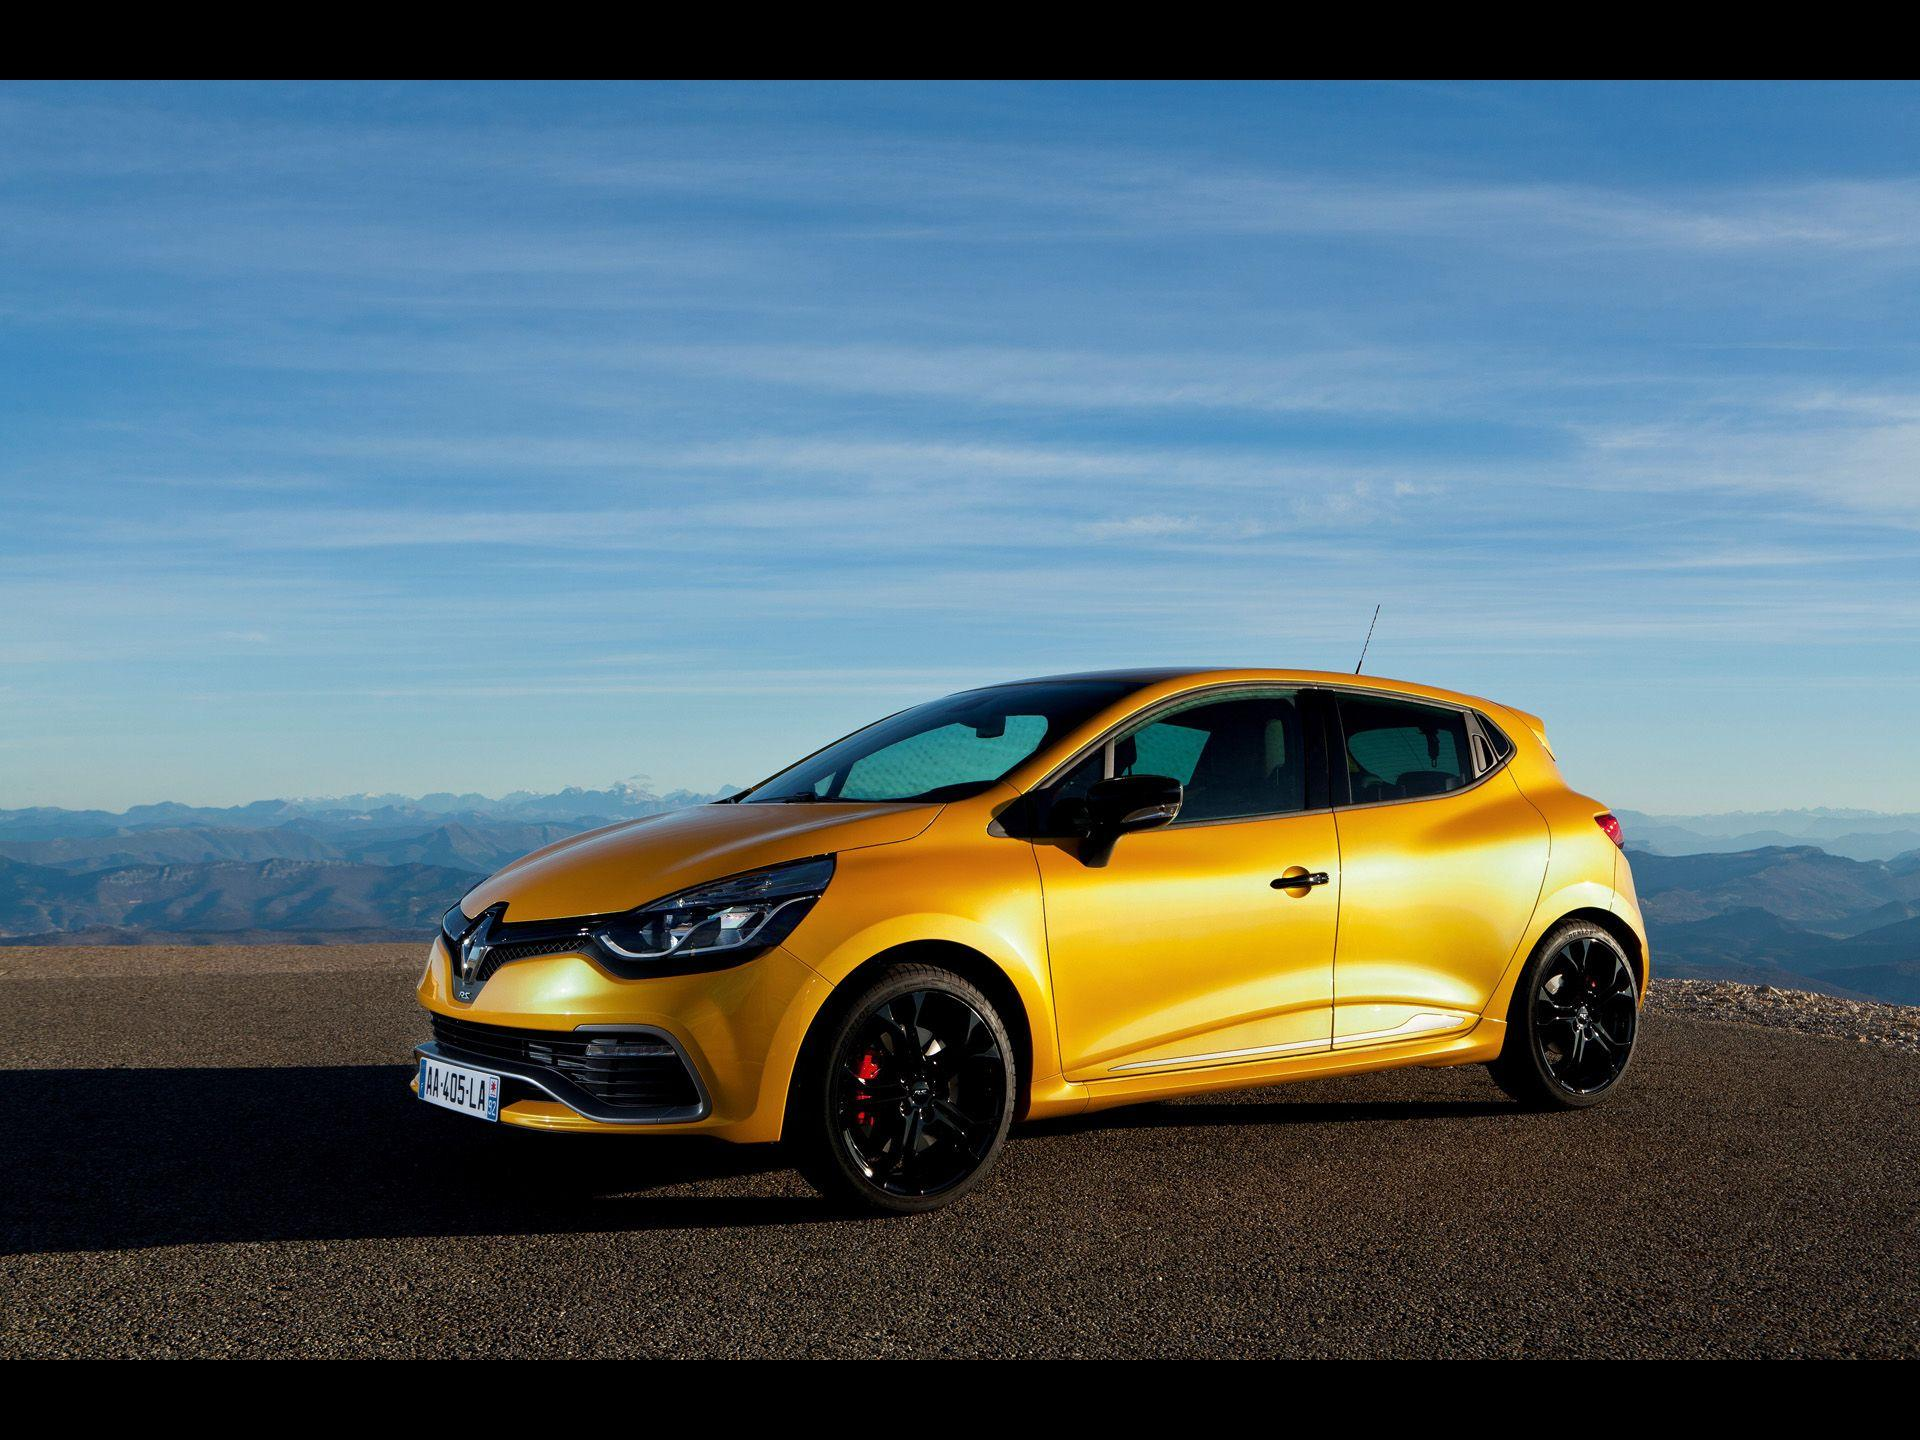 3 2013 Renault Clio Rs 200 Edc HD Wallpapers